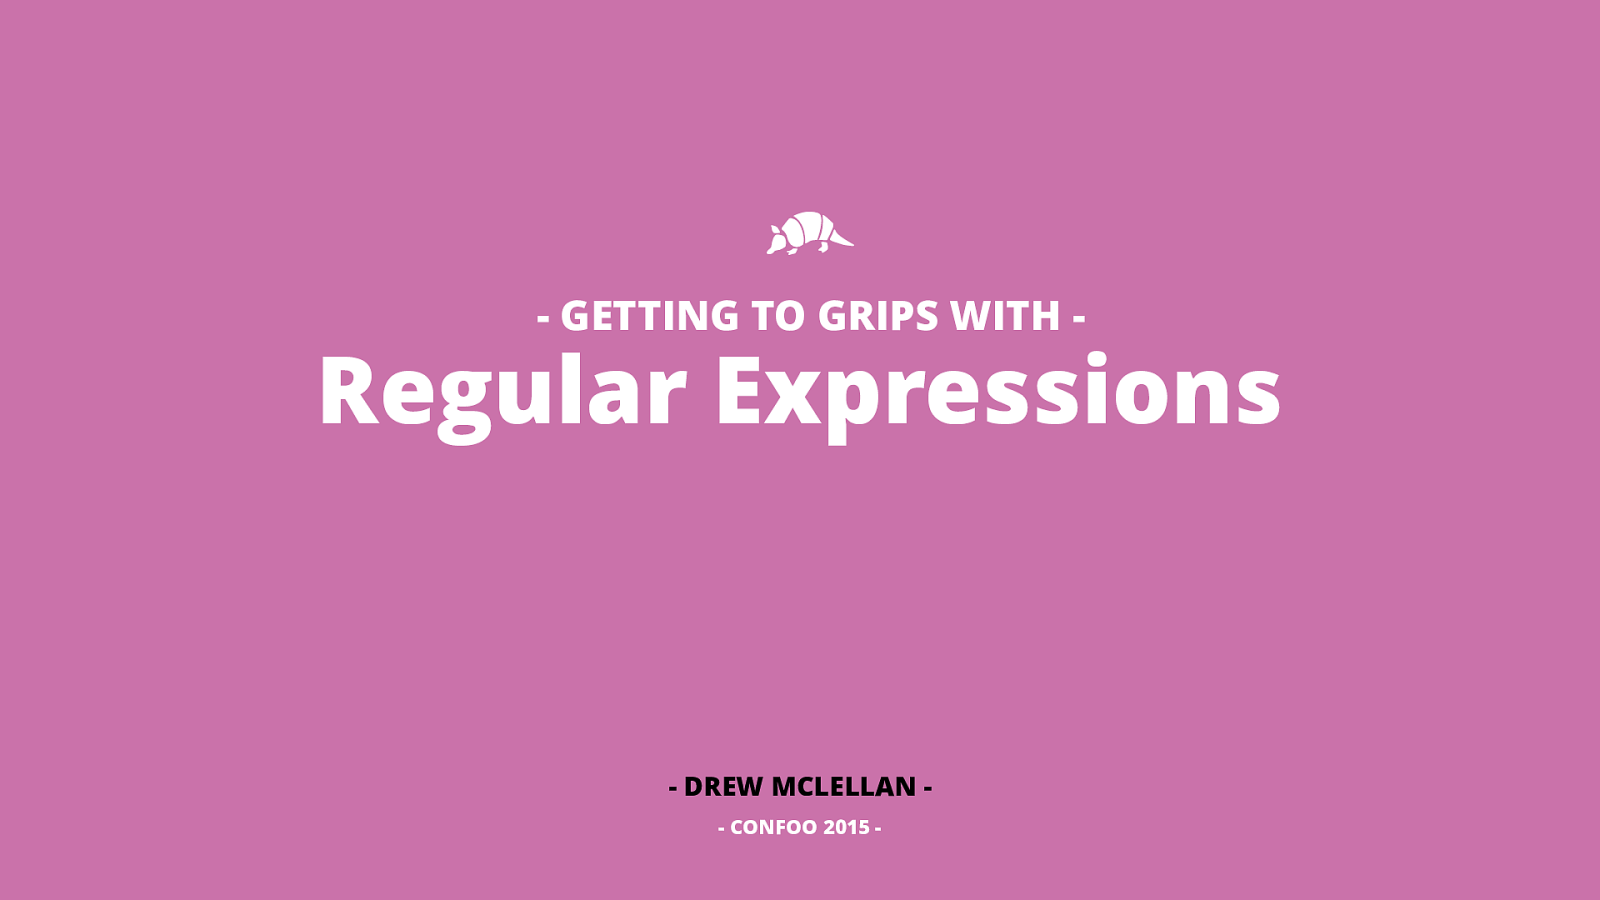 Getting To Grips with Regular Expressions